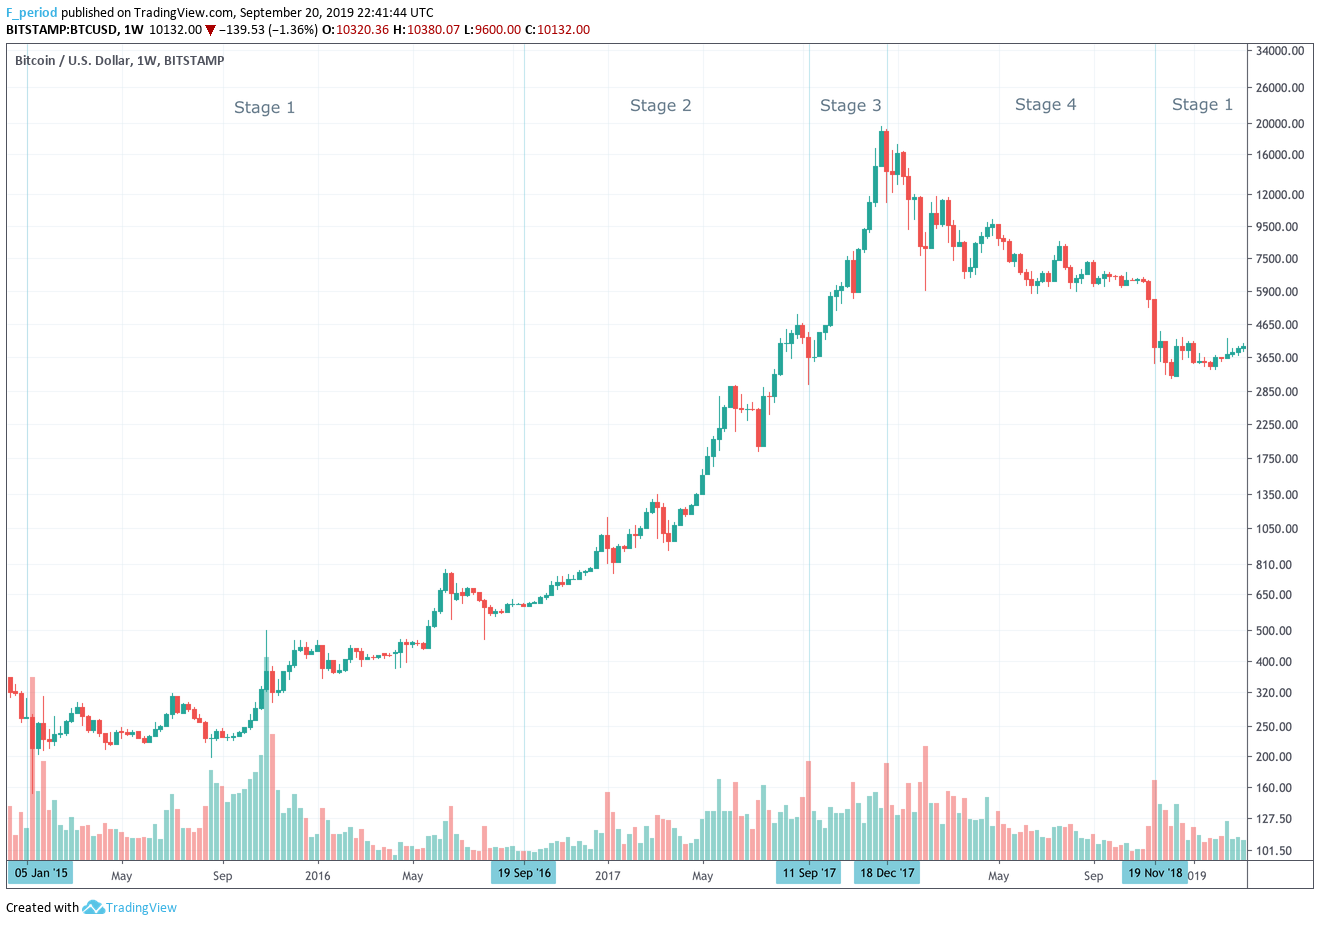 Bitcoin Price chart between January 2015 and March 2019